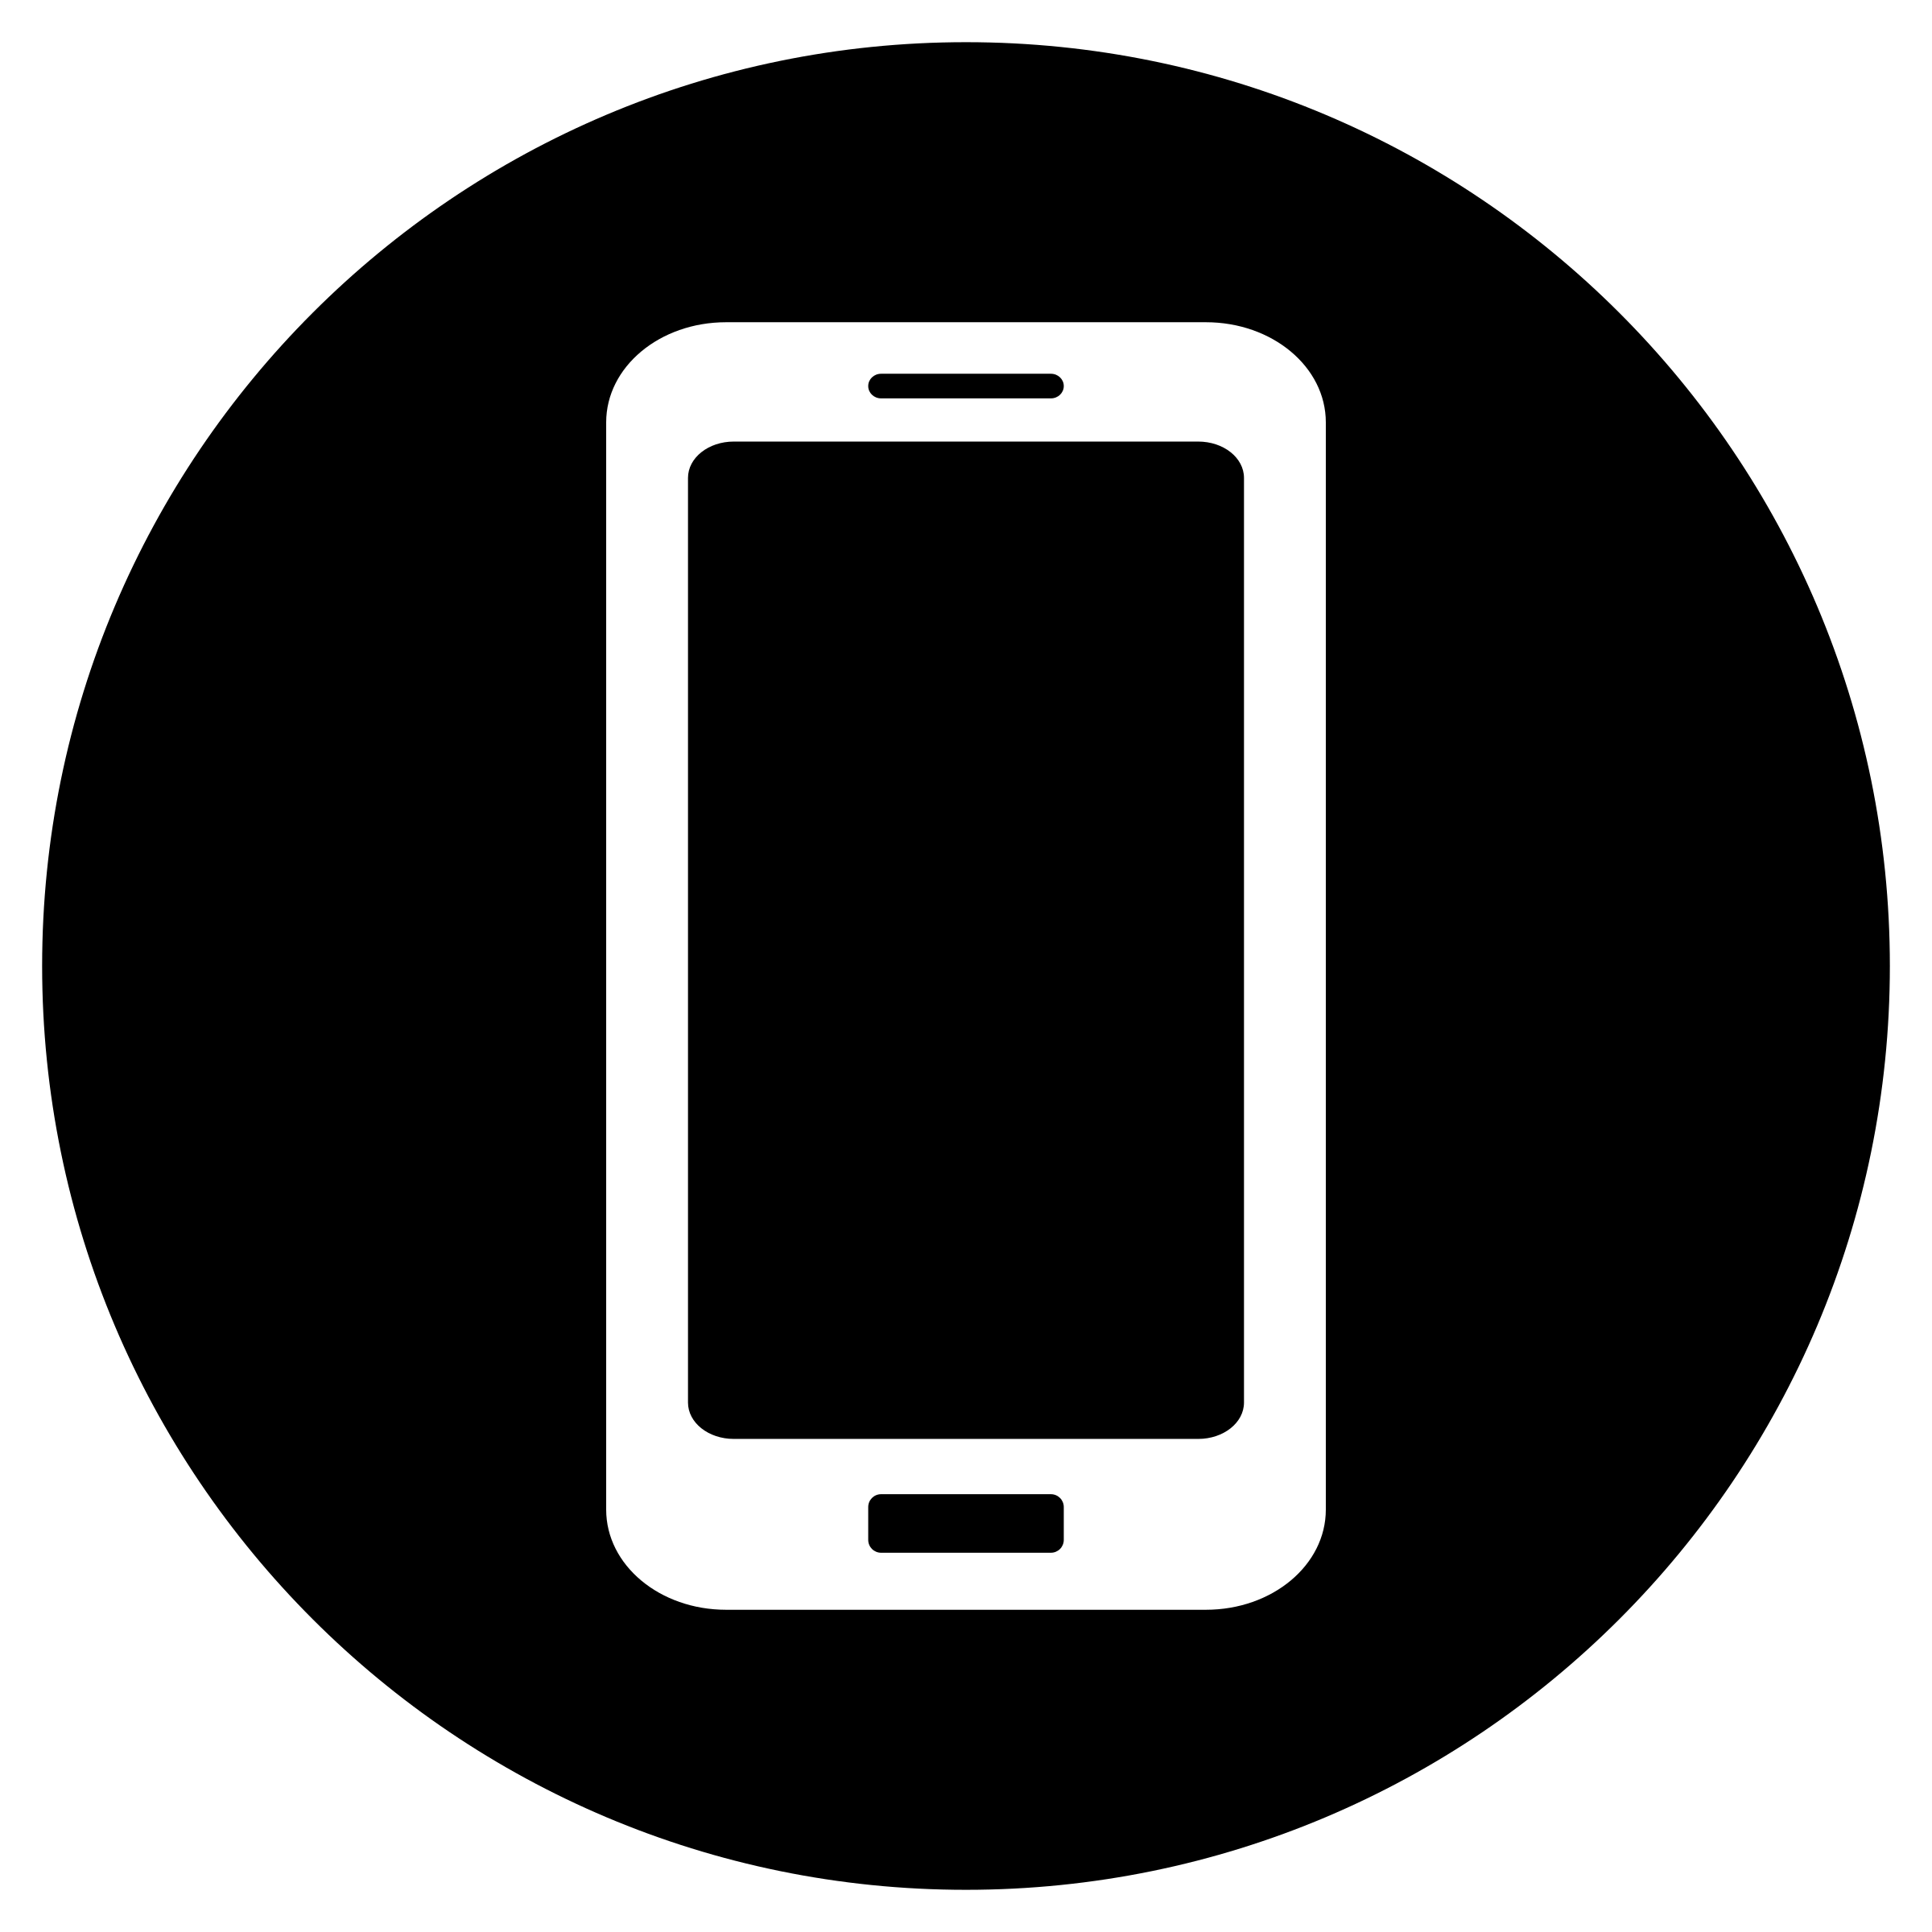 Mobile Phone Icon Black and White